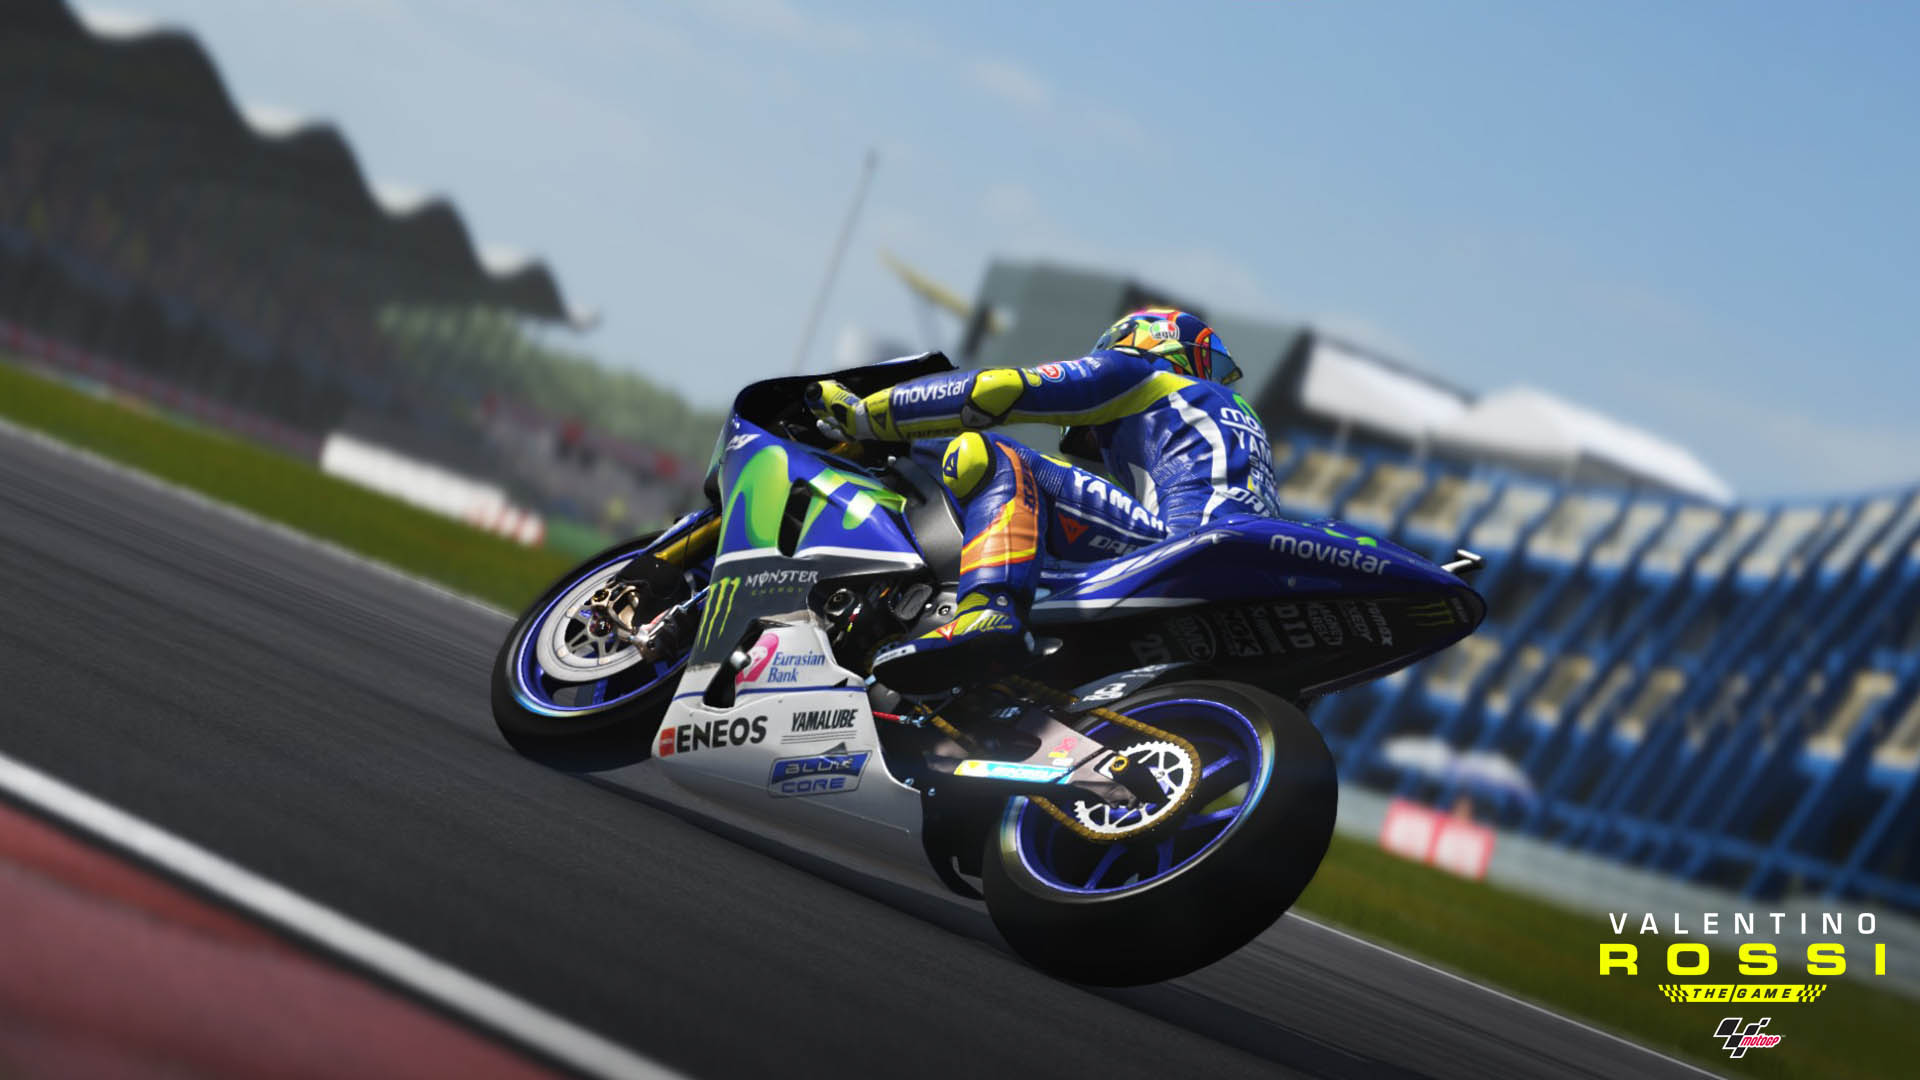 Real Events 1: 2016 MotoGP Season screenshot